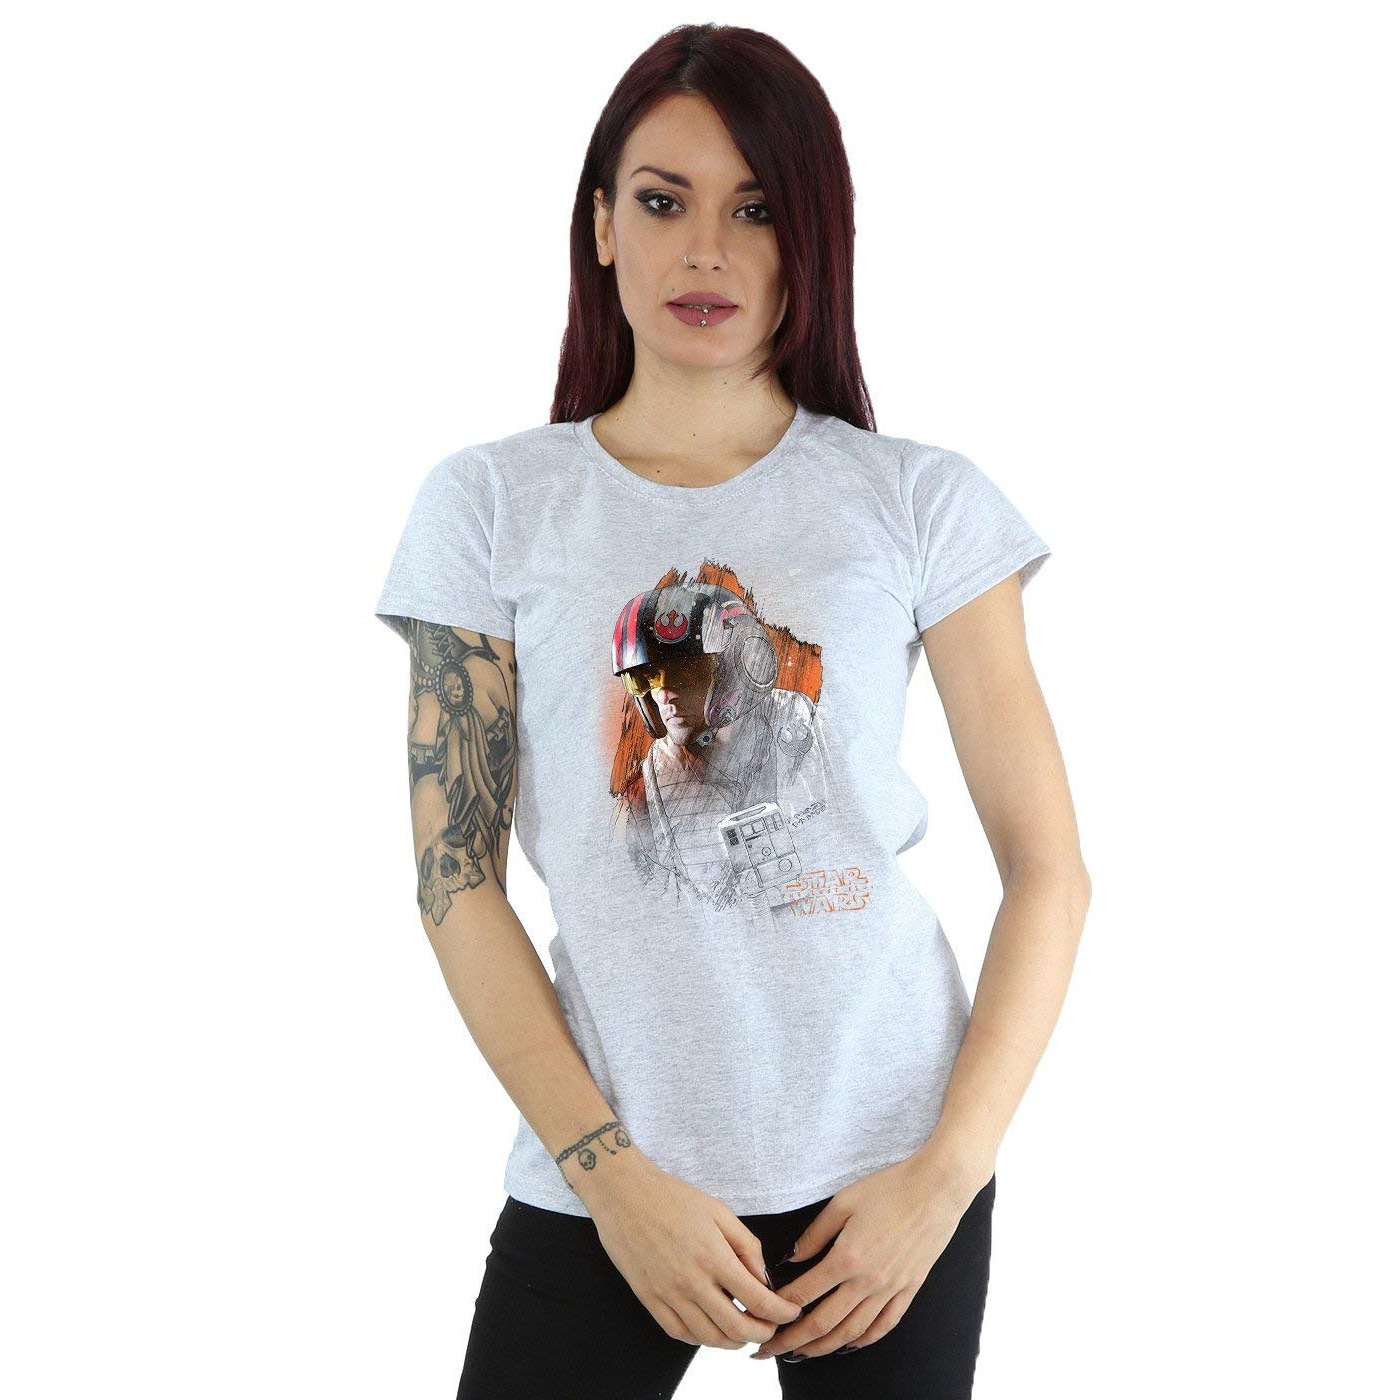 Leia's List - Women's Star Wars Poe Dameron T-Shirt by Absolute Cult available on Amazon